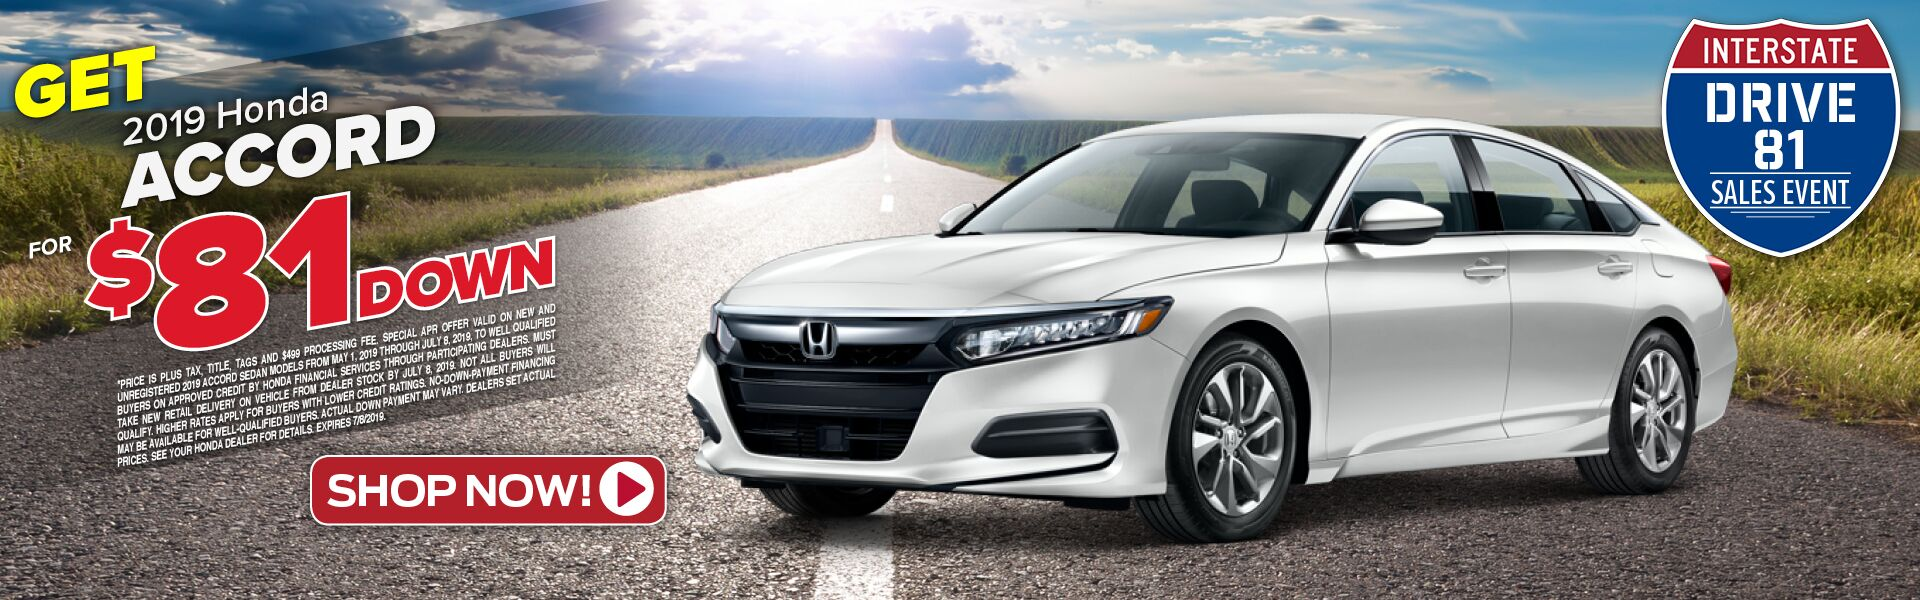 2019 Honda Accord Sedan Special